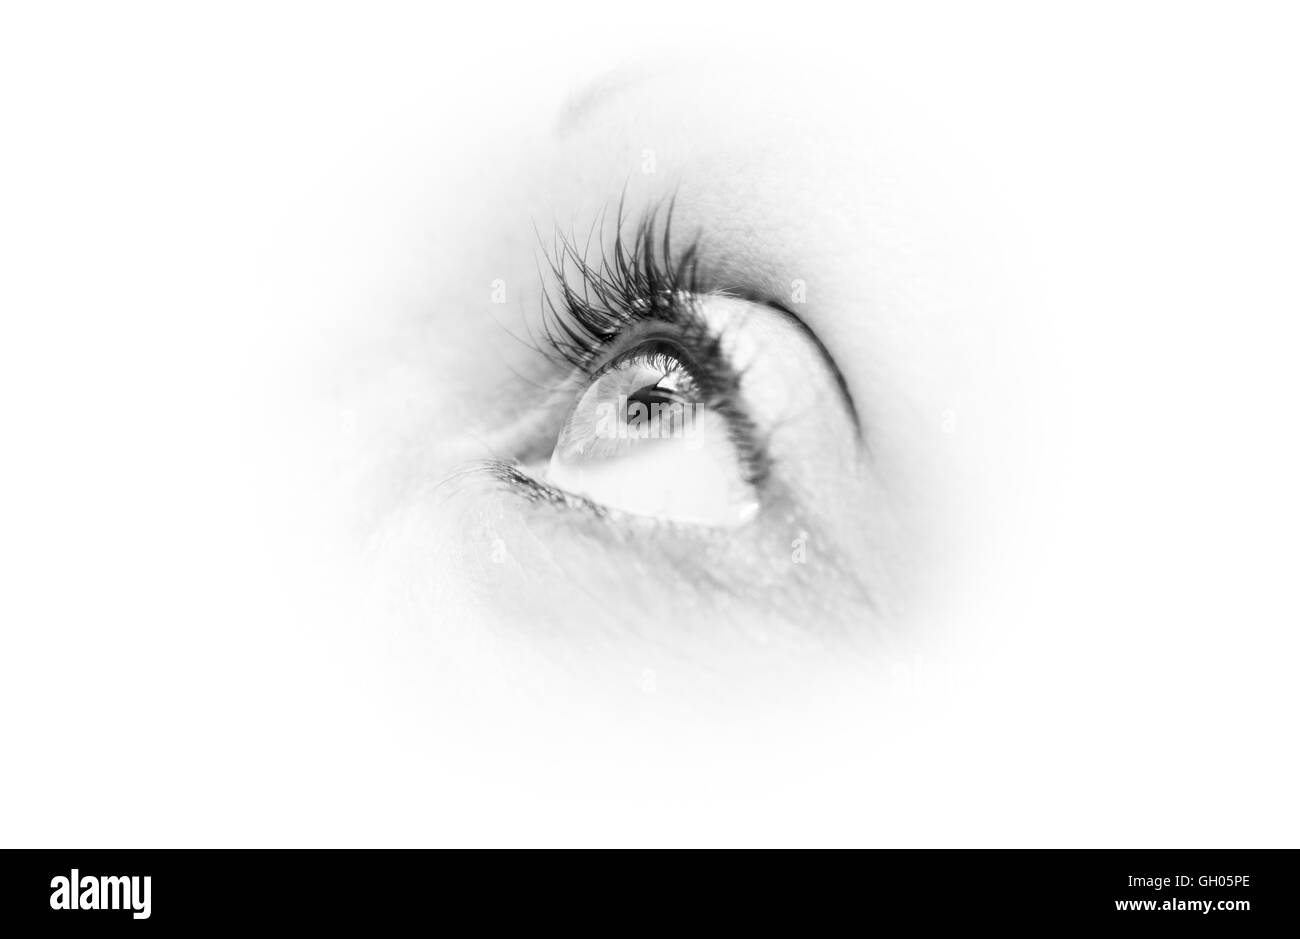 An eye looking up in close up detail - Stock Image